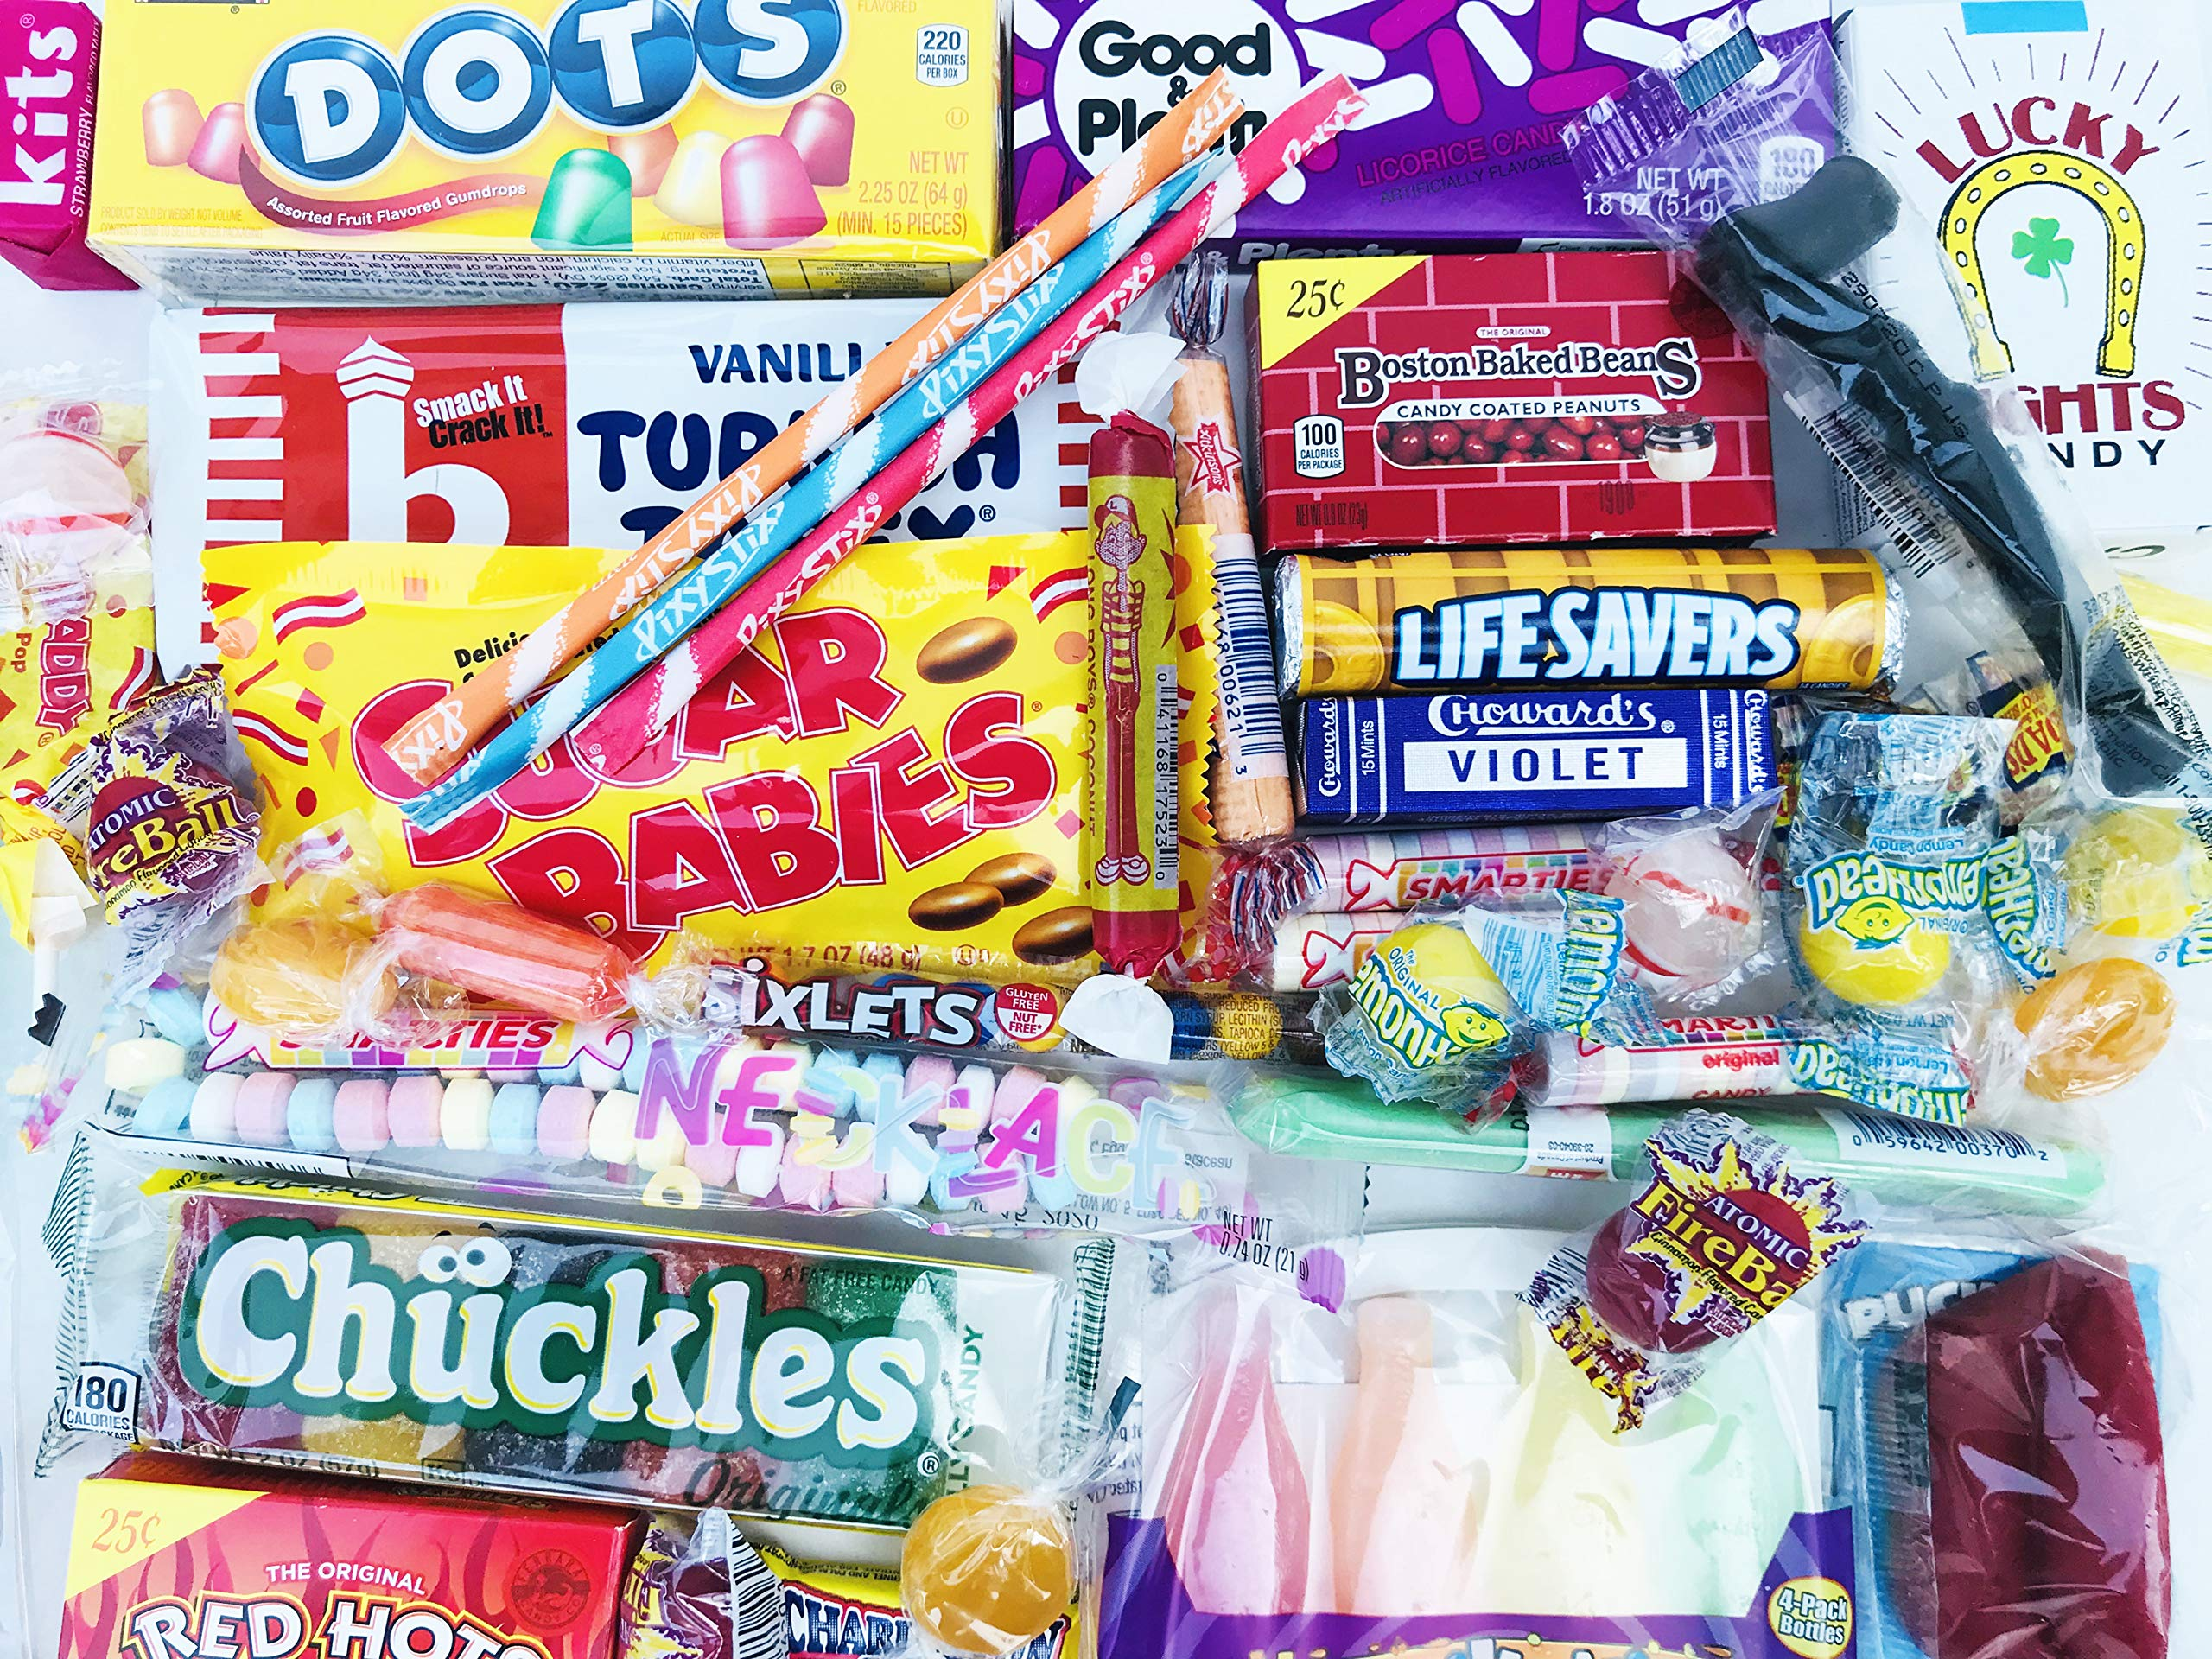 Woodstock Candy ~ 70th Birthday Gift Box of Retro Vintage Candy Assortment from Childhood for 70 Year Old Men and Women Born 1949 - Great Idea for Mom or Dad - Jr by Woodstock Candy (Image #5)